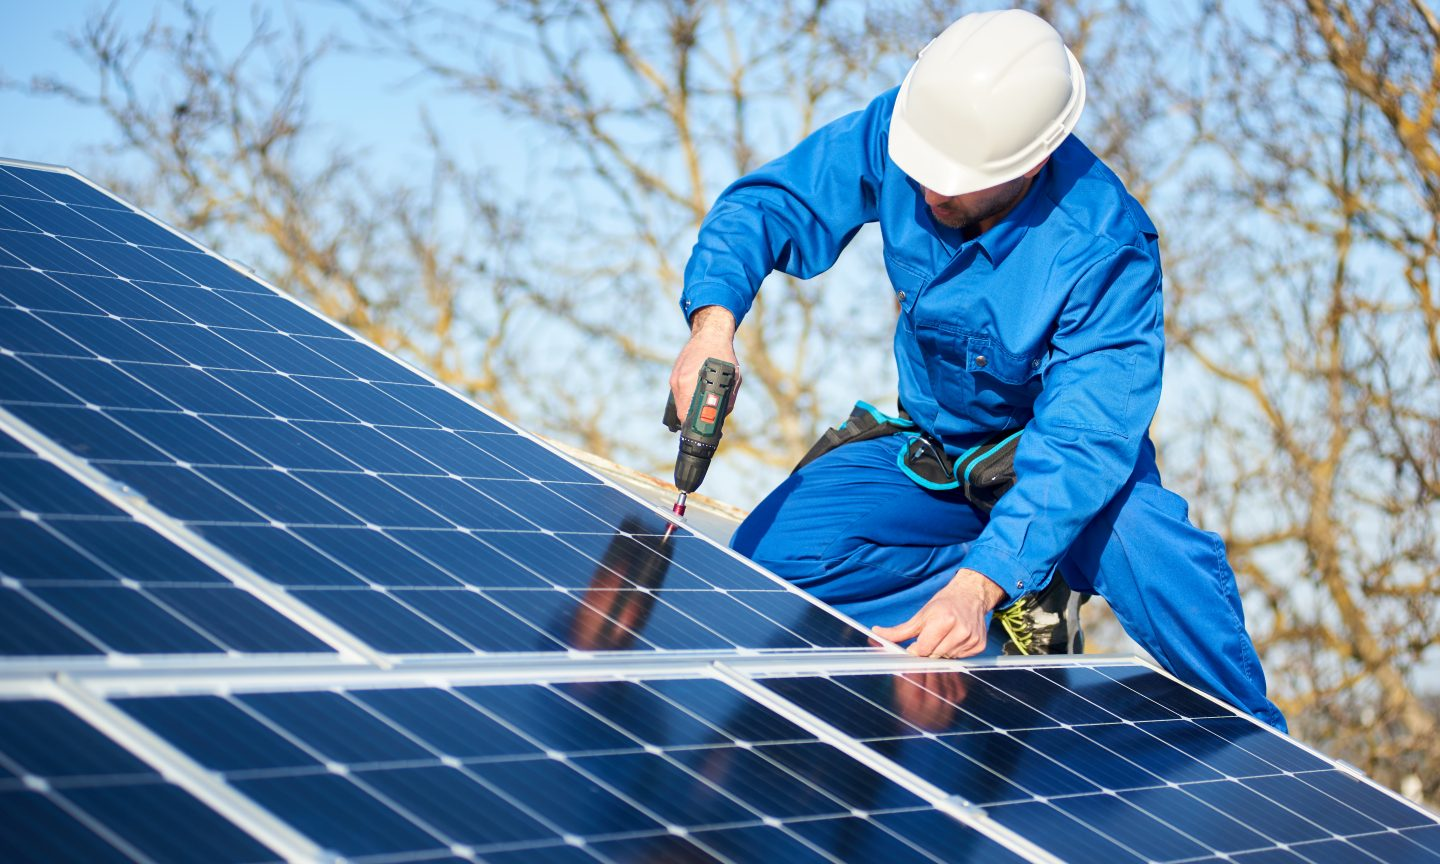 5 Important things to consider before choosing Solar Panel Installer